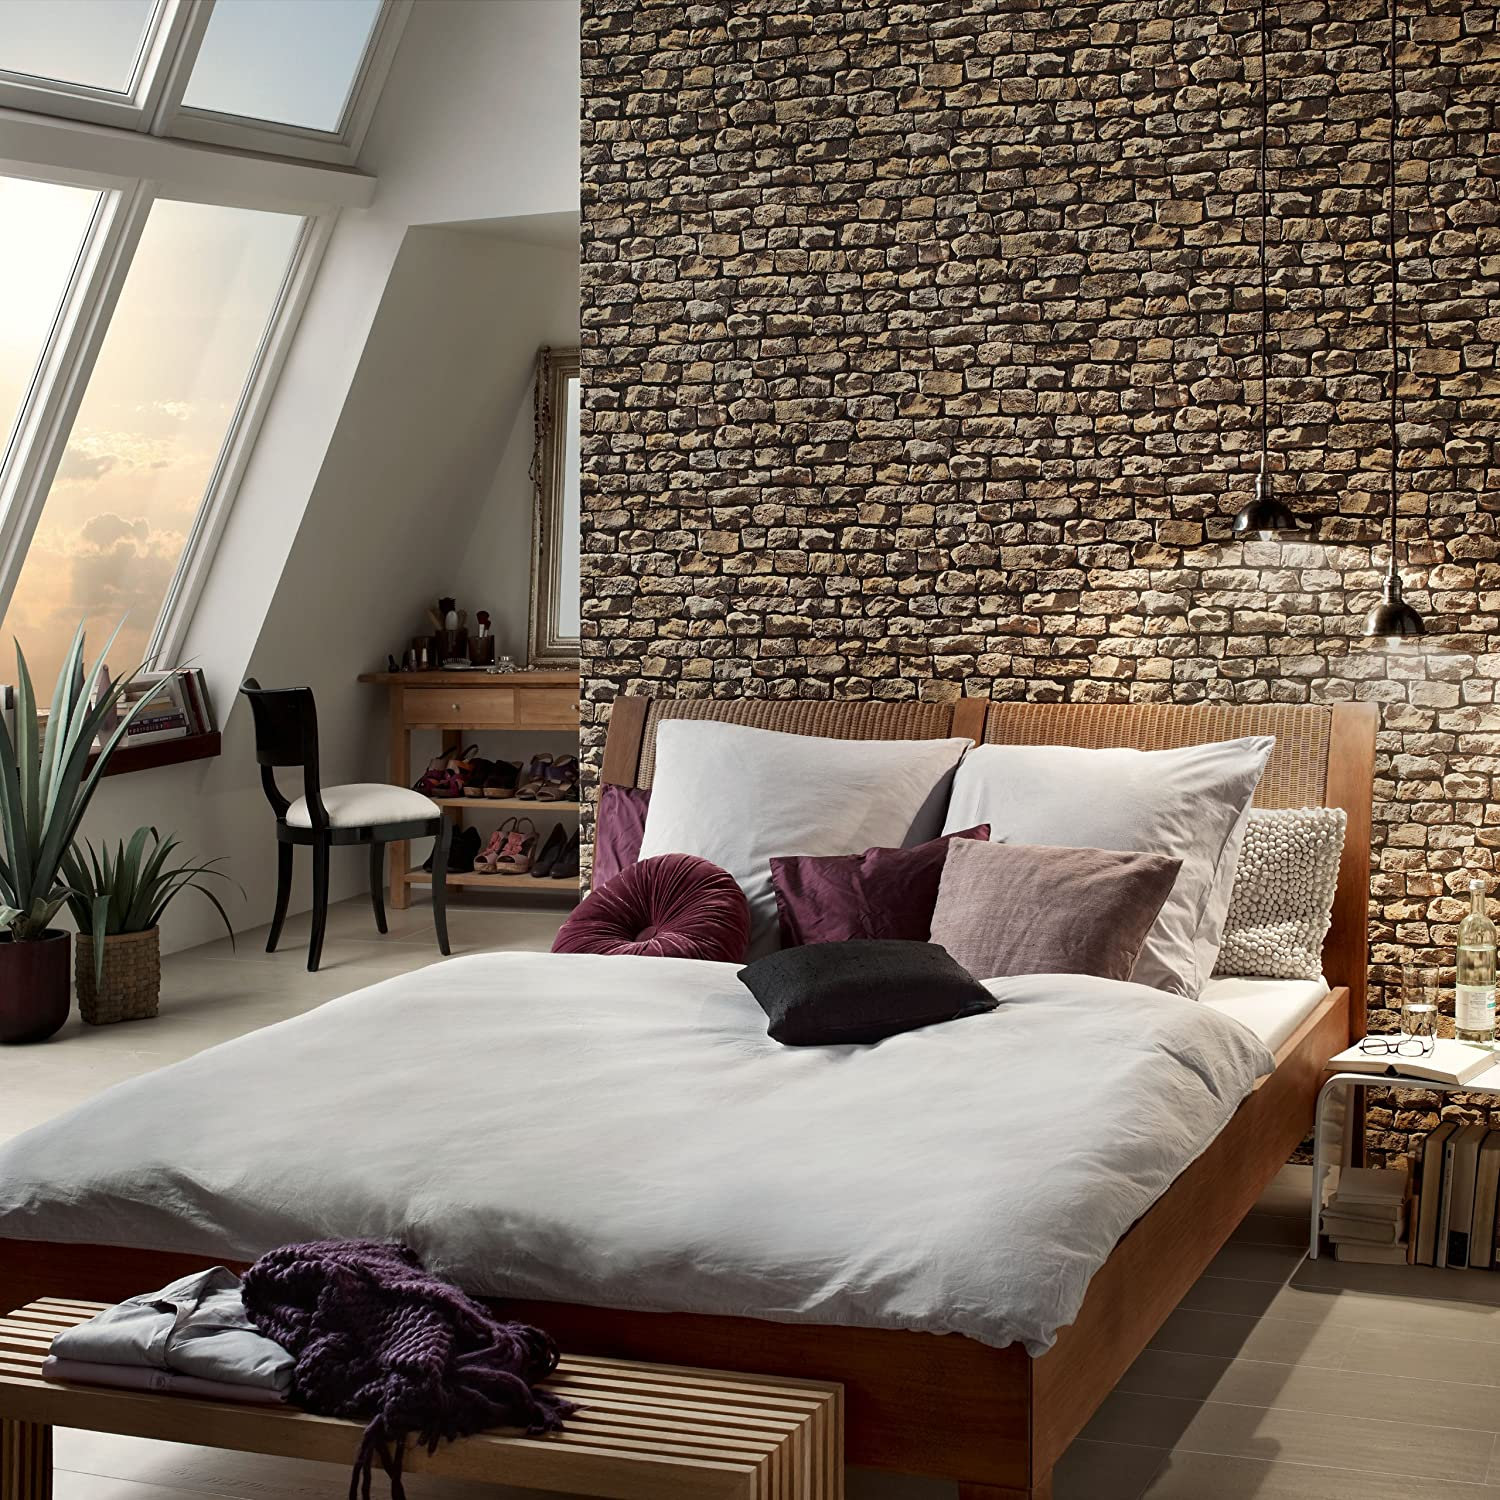 A S Creation 9079 12 Wood and Stone Natural Wallpaper Amazon